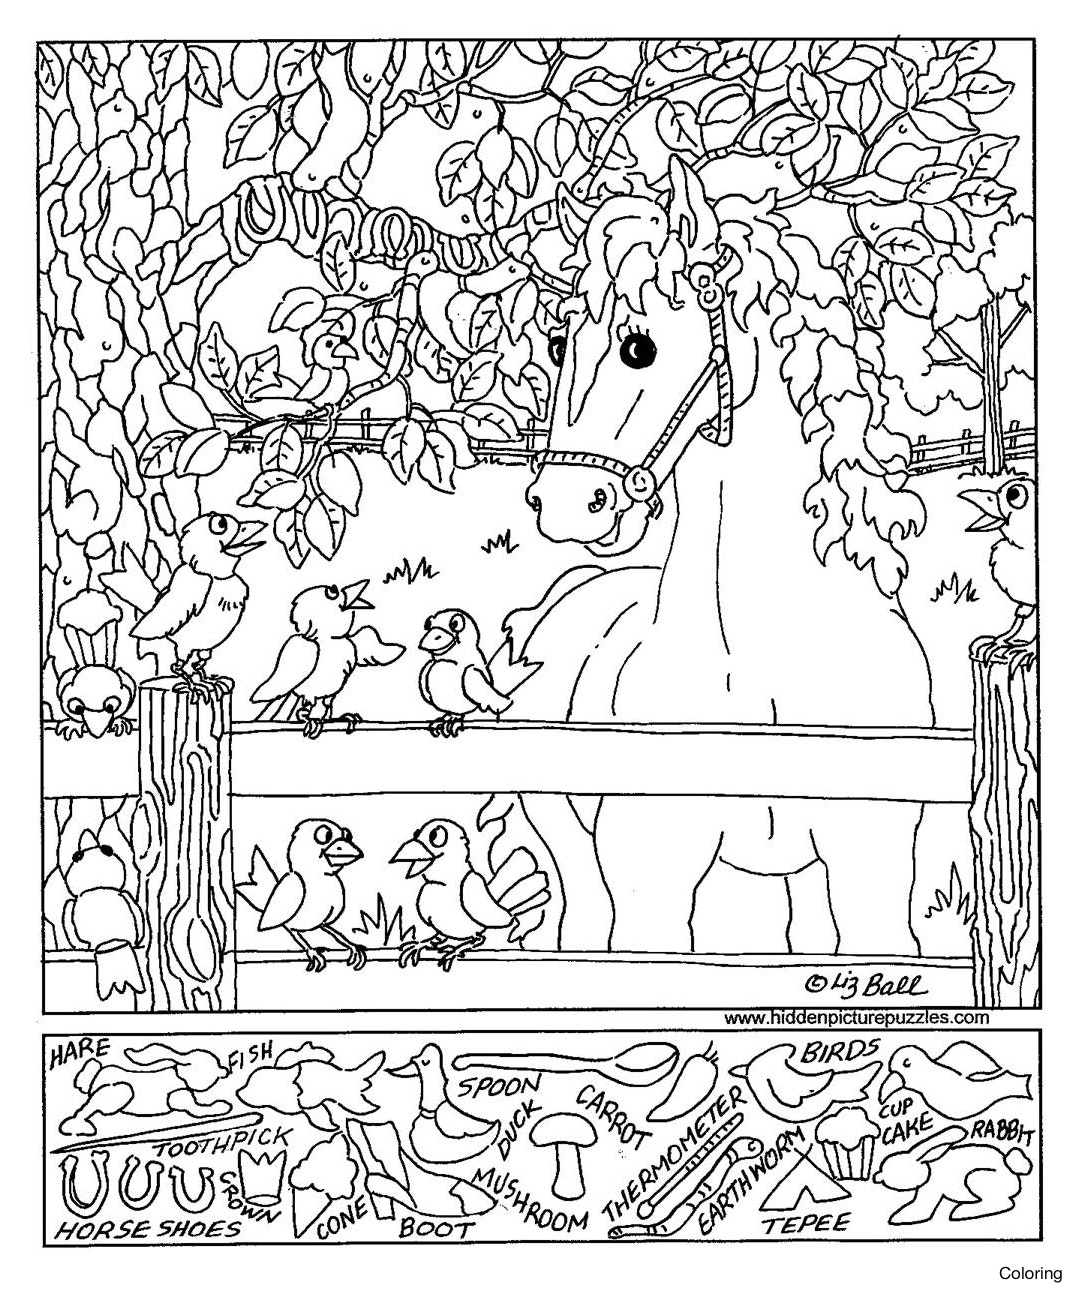 1073x1289 Coloring Pages For Adults With Hidden Objects